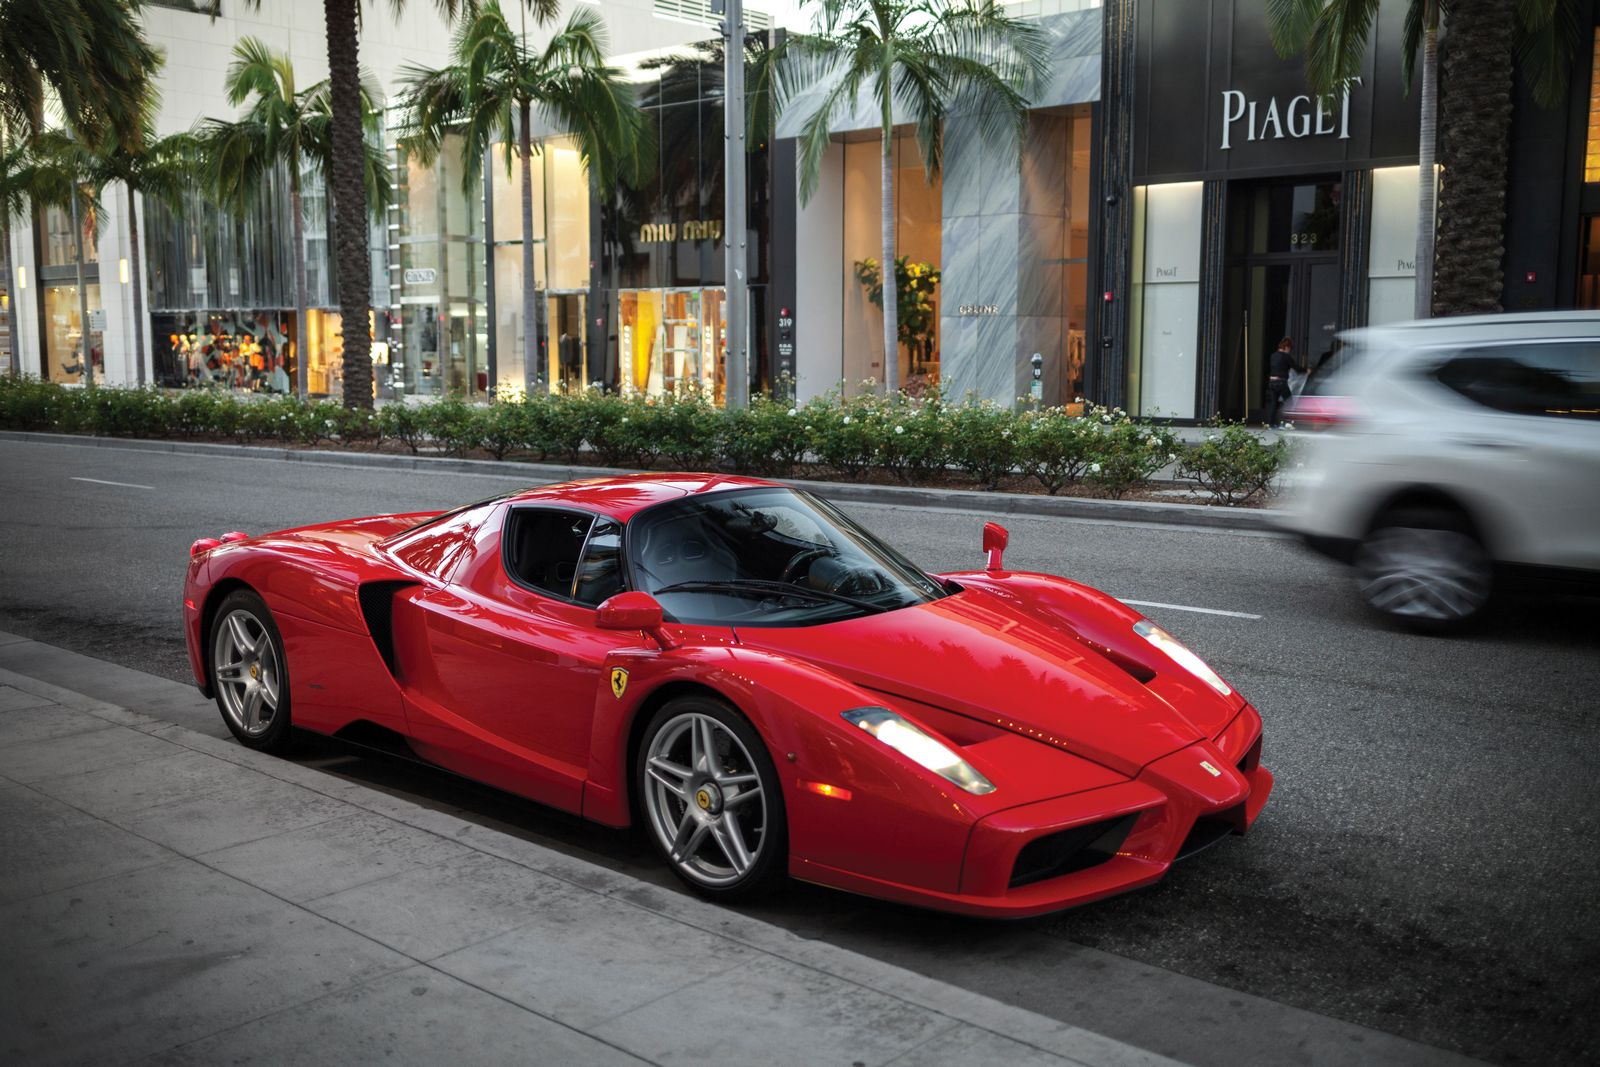 floyd mayweather 39 s ferrari enzo sells for 3 3 million at auction carscoops. Black Bedroom Furniture Sets. Home Design Ideas